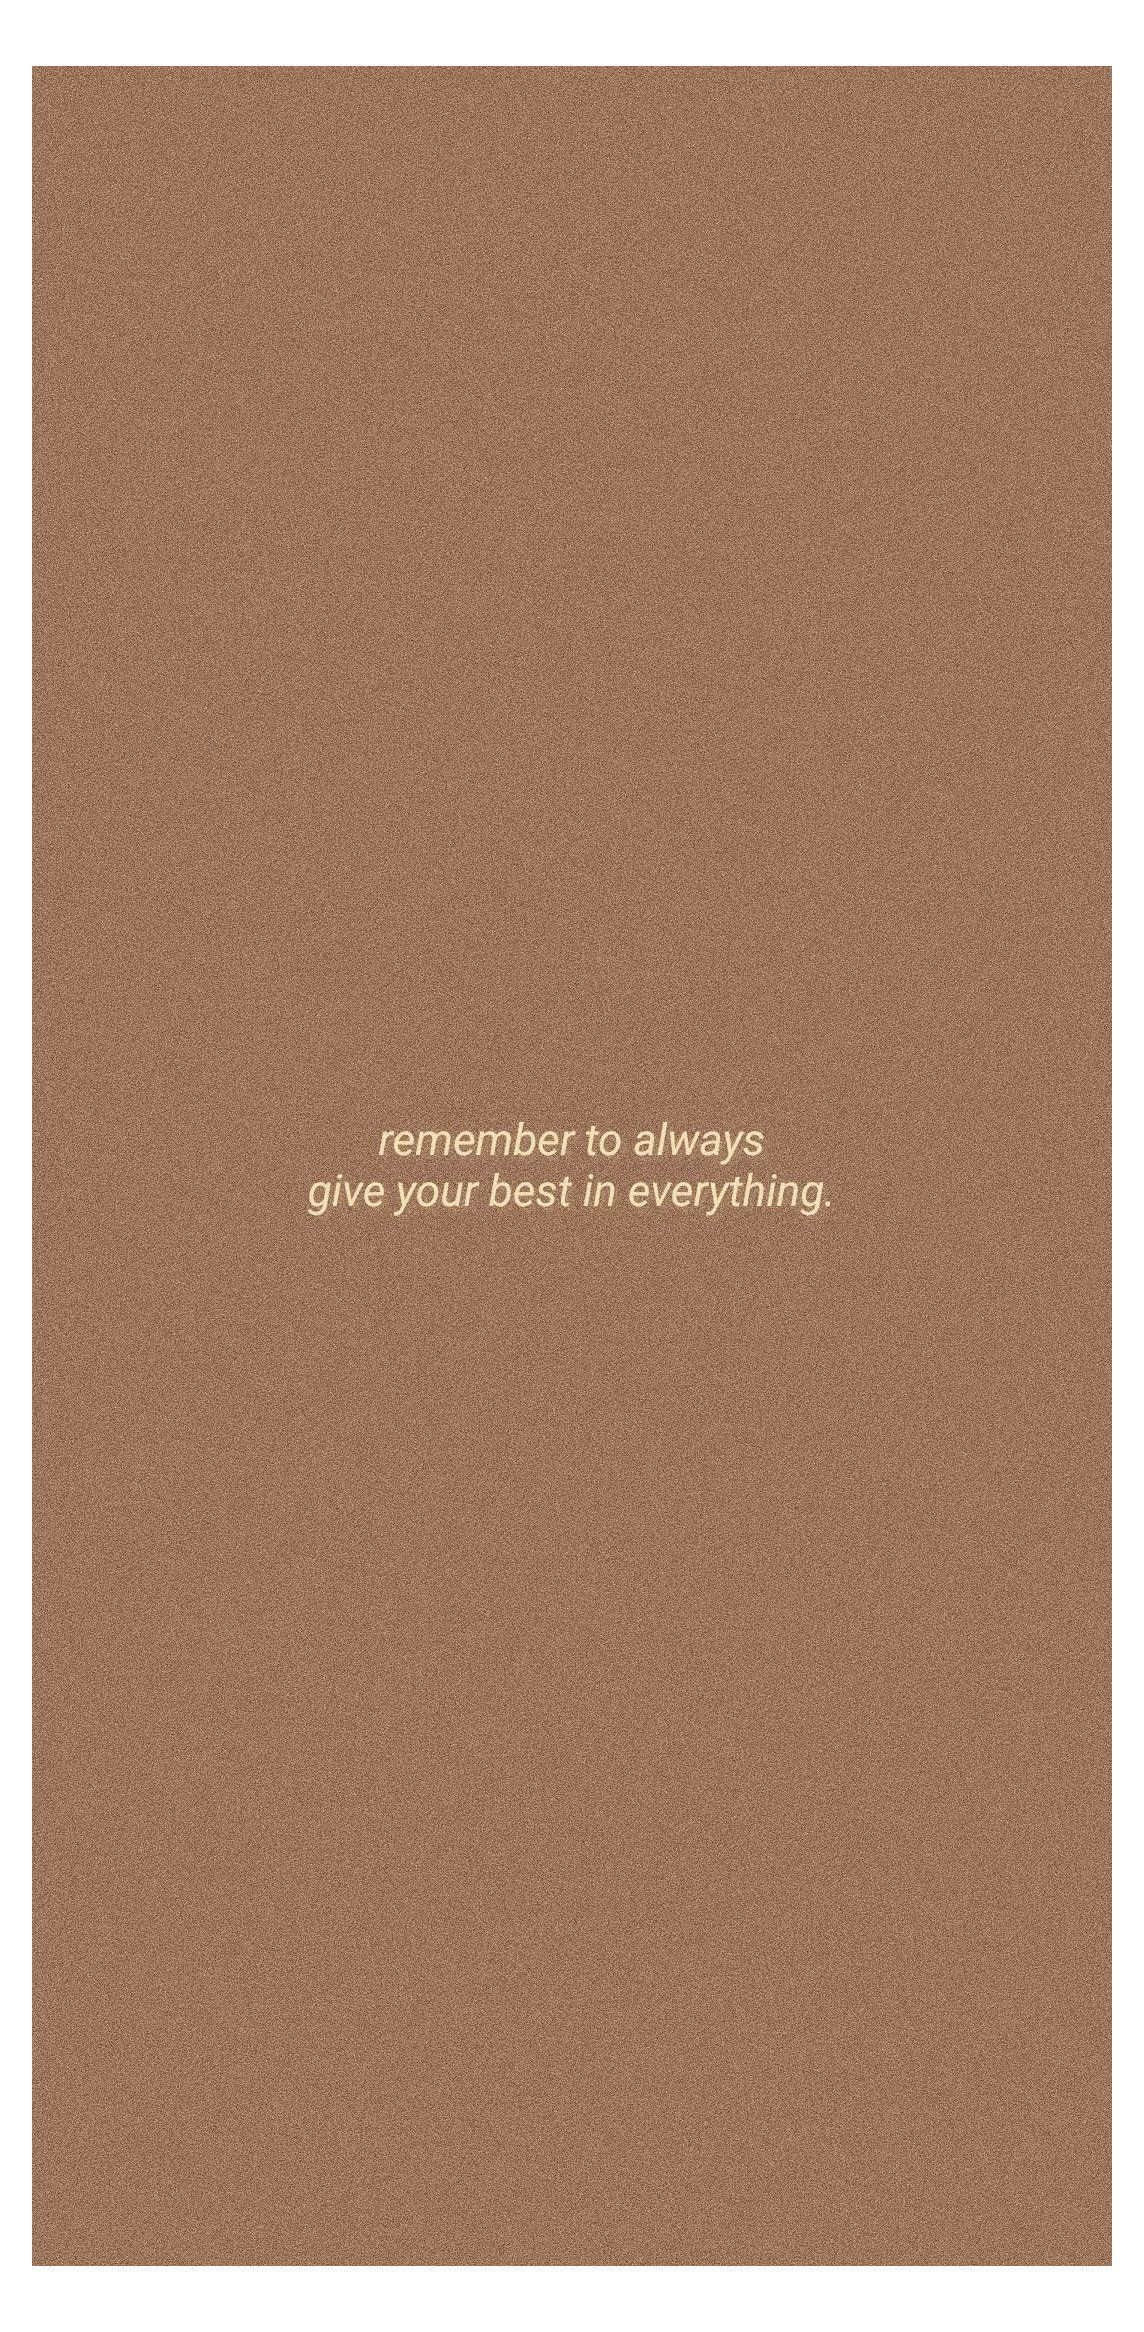 brown aesthetic wallpaper quotes